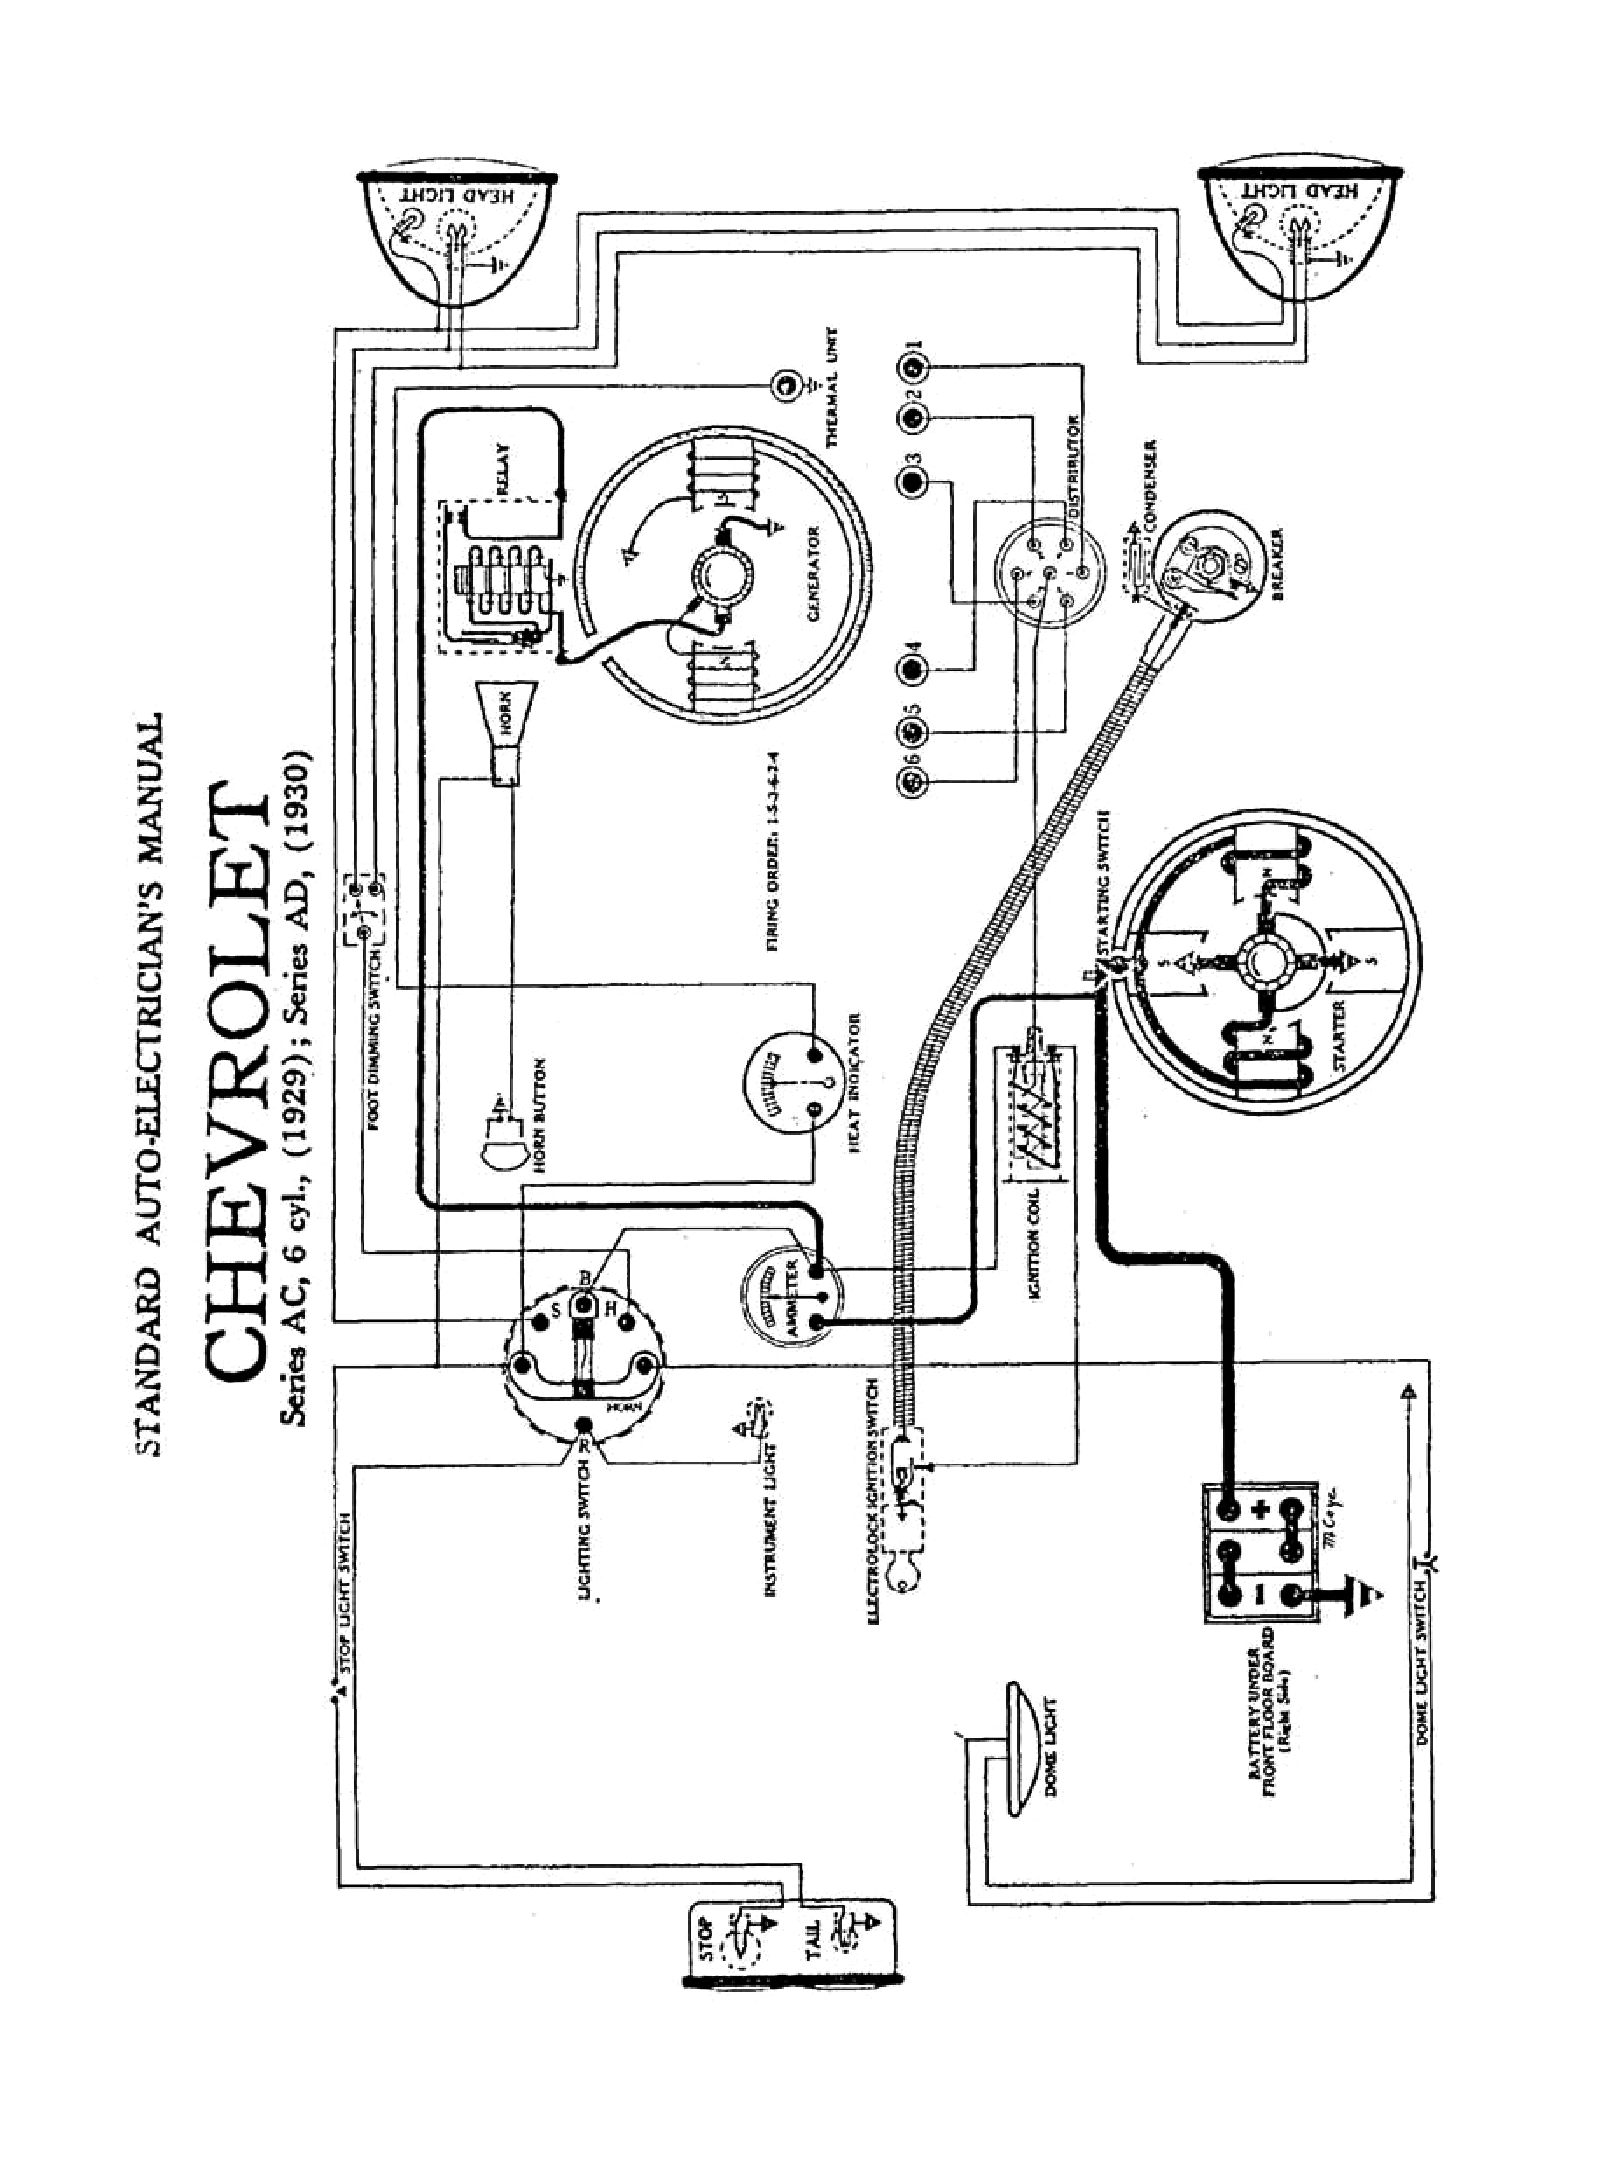 chevy wiring diagrams rh chevy oldcarmanualproject com Automotive Wiring System Diagram Automotive Wiring Schematic Symbols